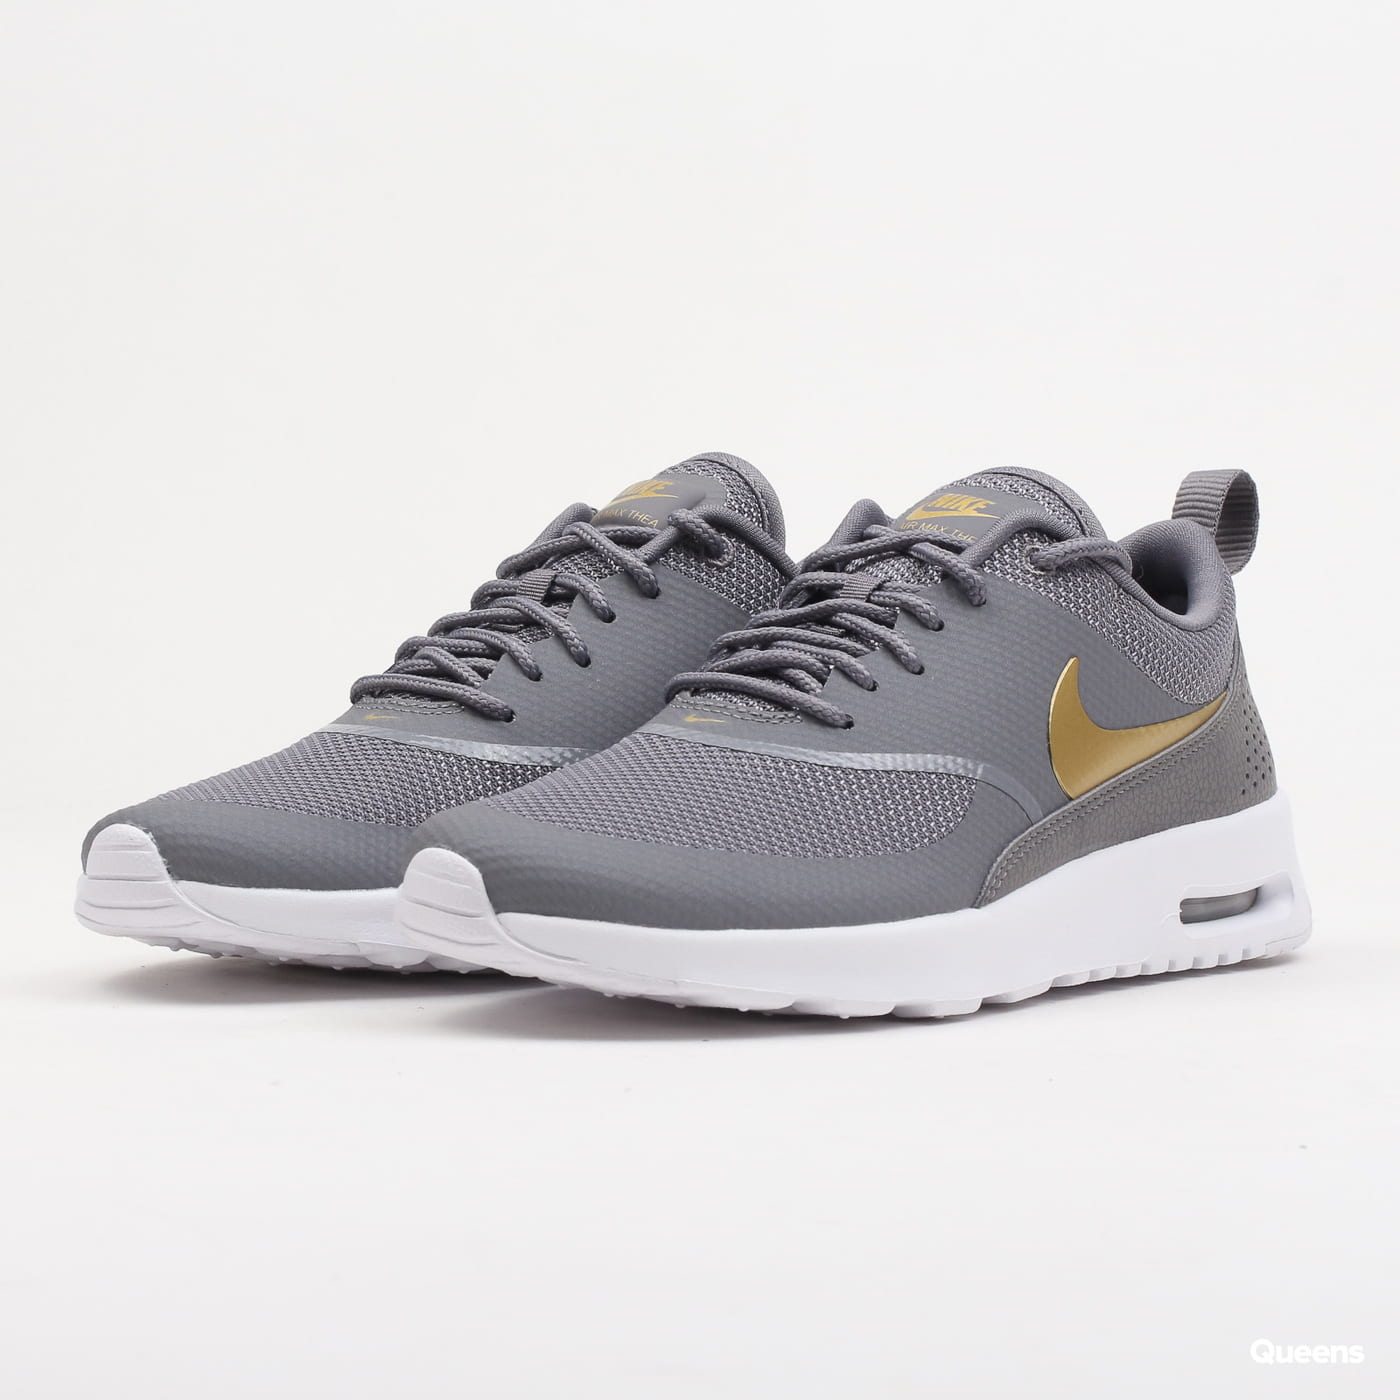 finest selection 1ad13 b4db0 Nike WMNS Air Max Thea J gunsmoke   metallic gold - white (AJ2010-003) –  Queens 💚